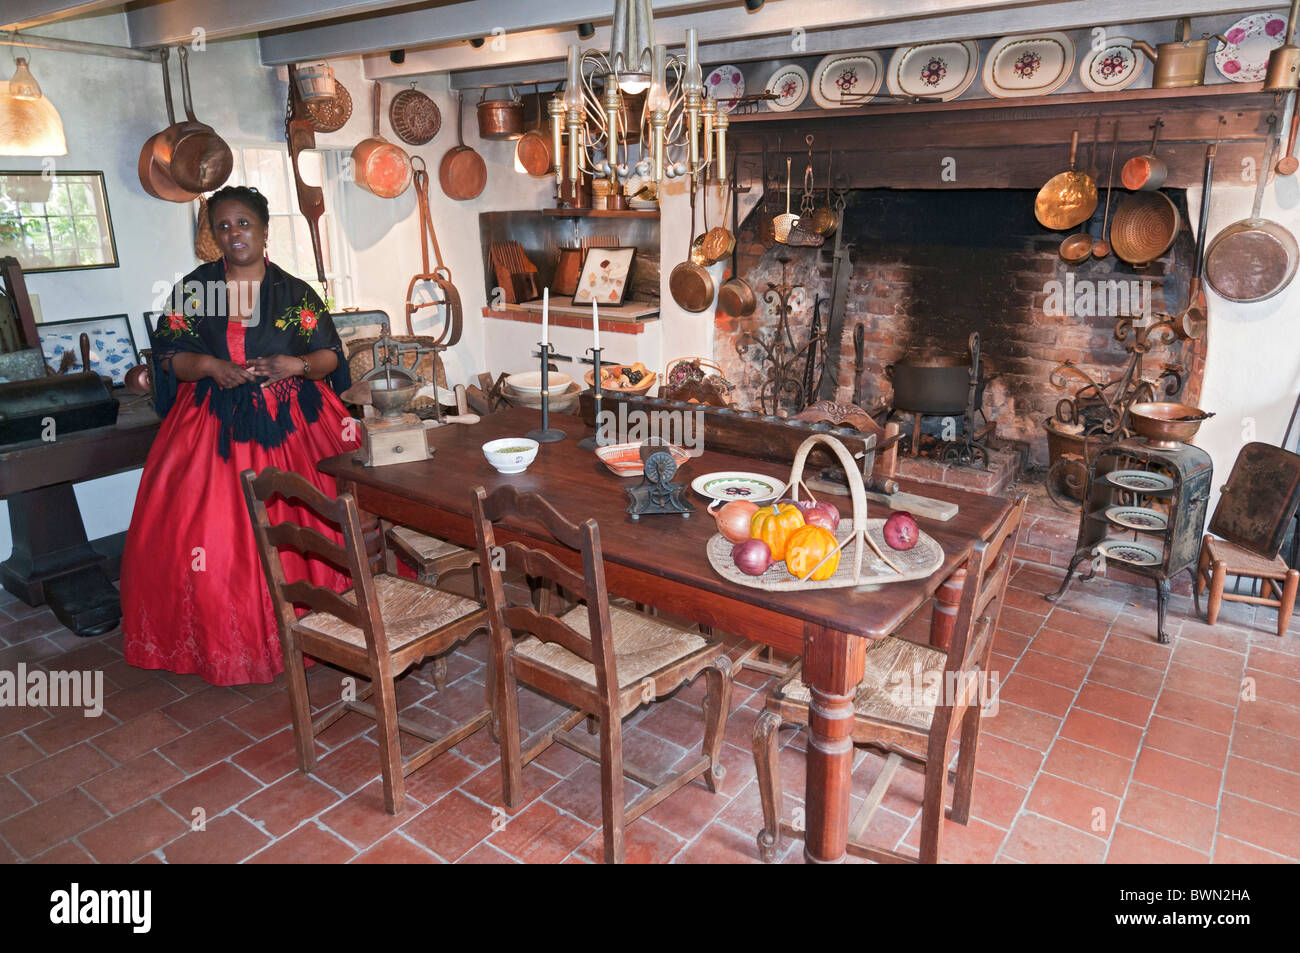 Louisiana, Darrow, Houmas House Plantation And Gardens, 1700u0027s French House  Kitchen, Guide In Period Costume